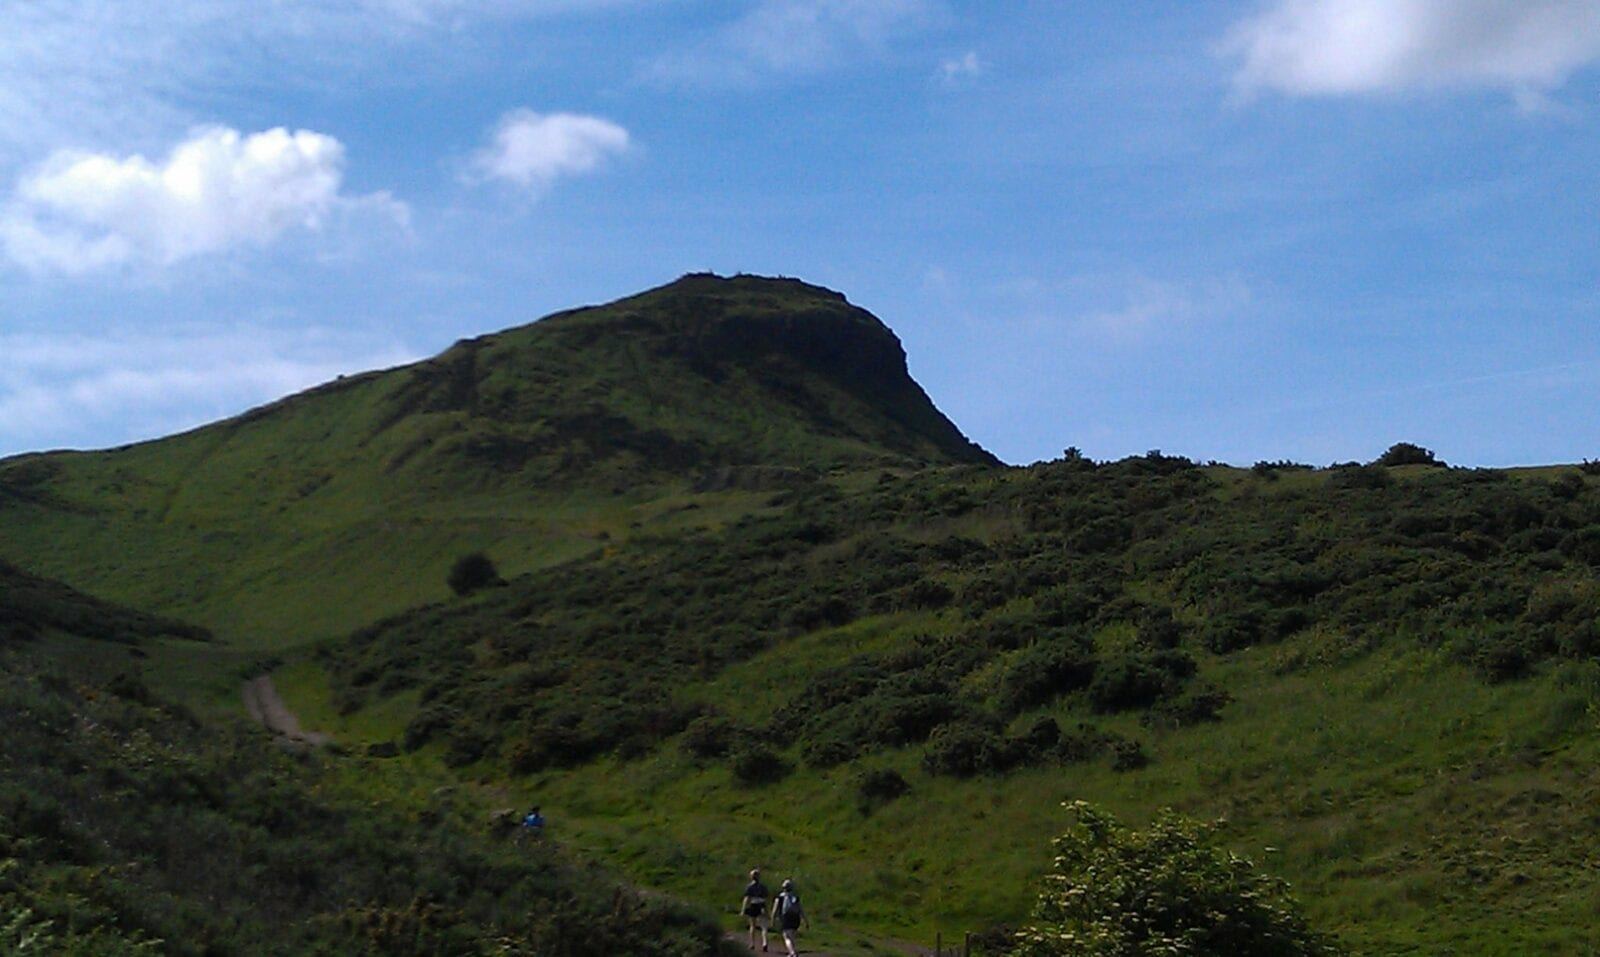 Heading up the trail on Arthur's Seat